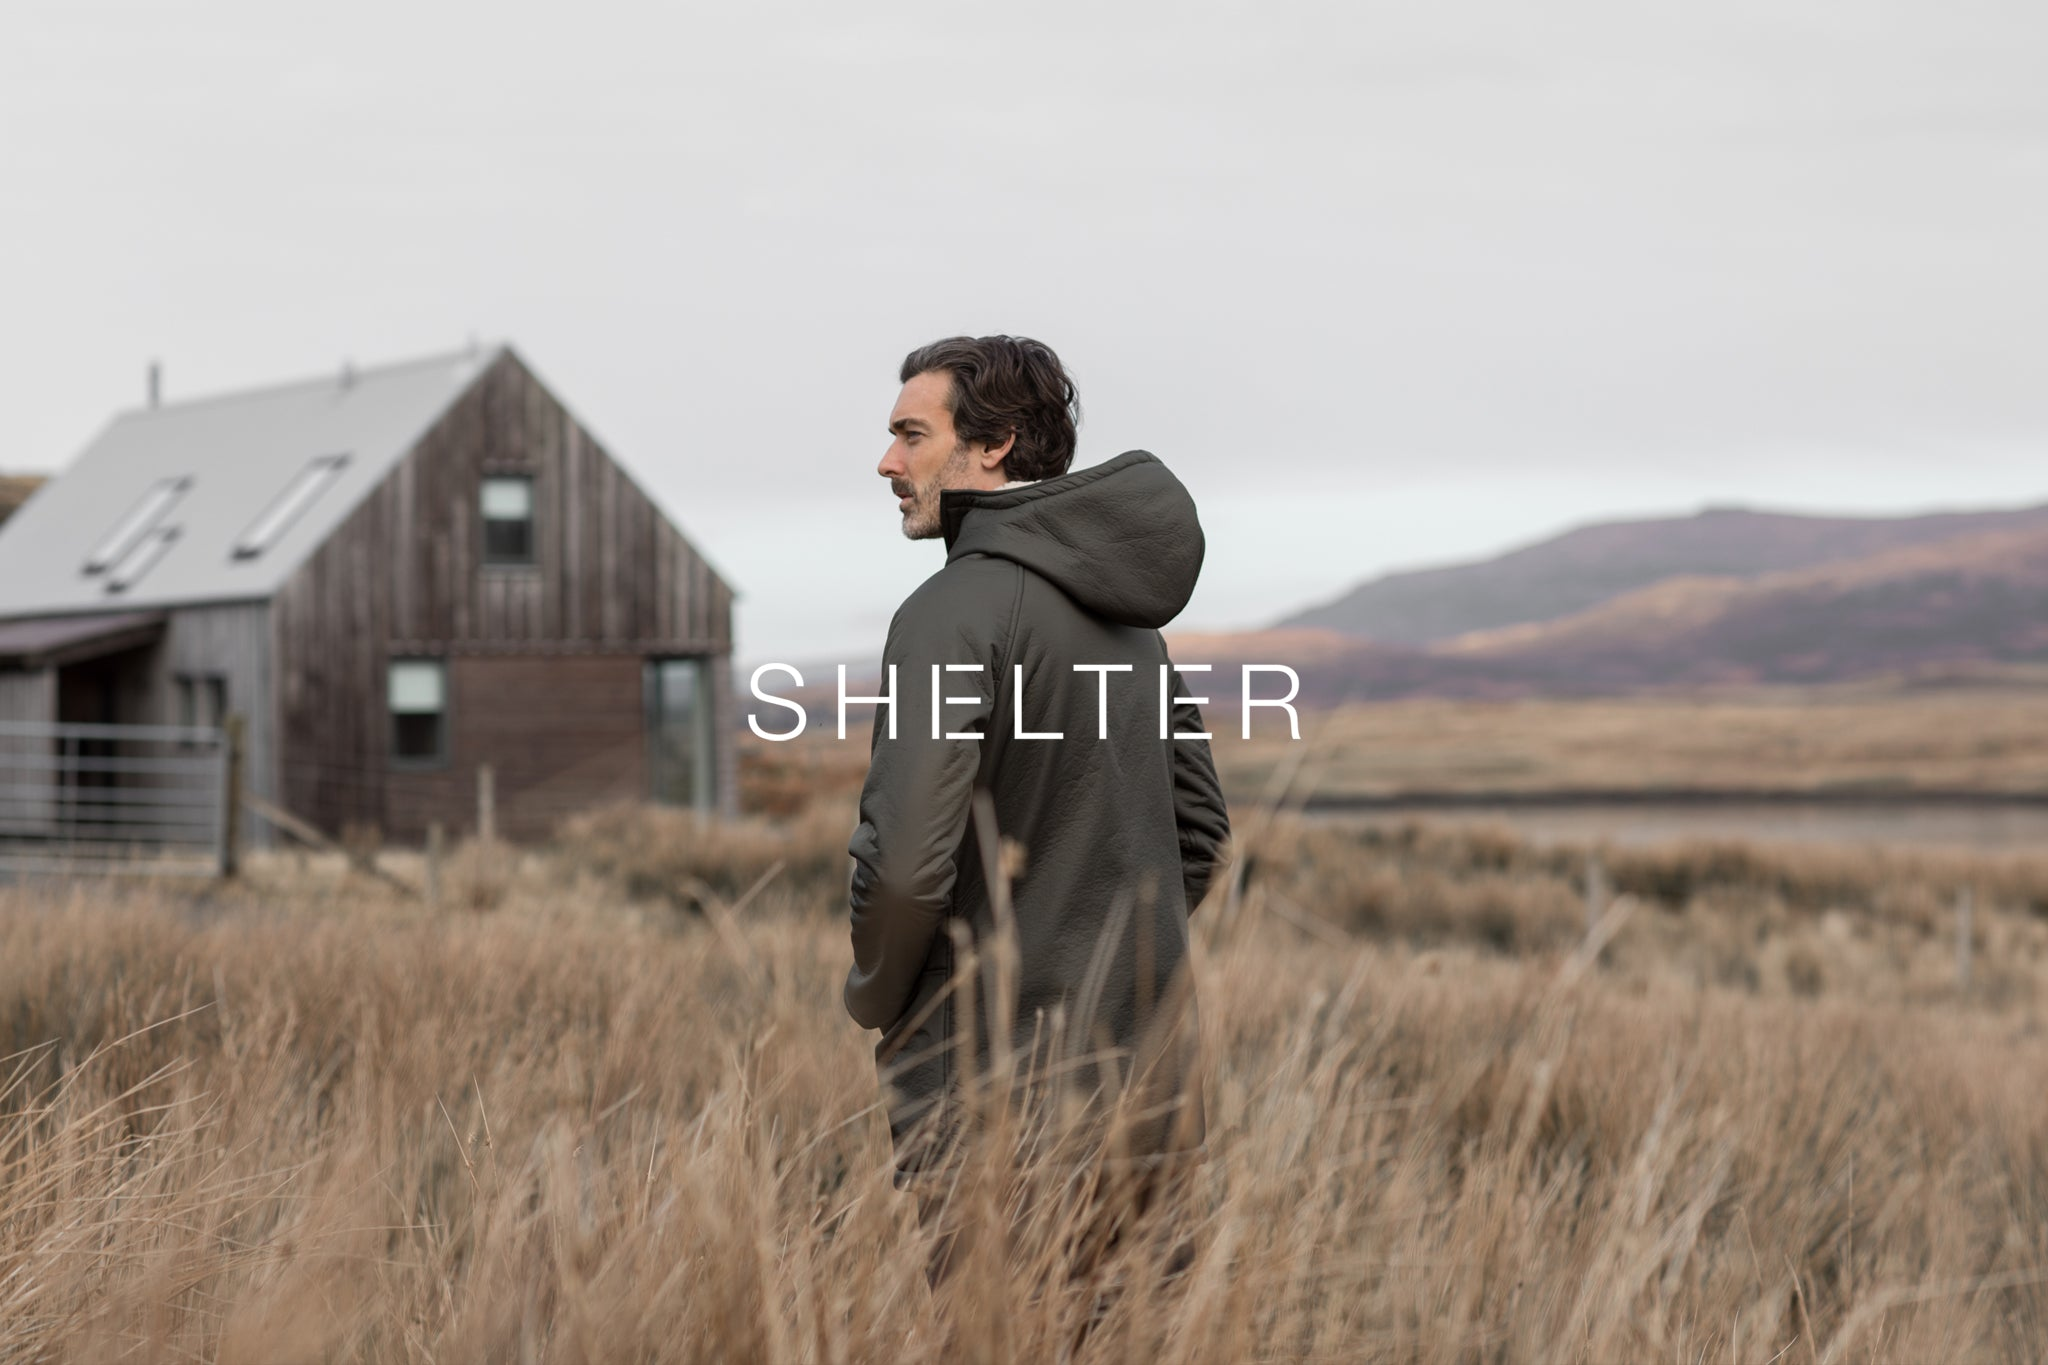 Kestin Hare Autumn/Winter Shelter